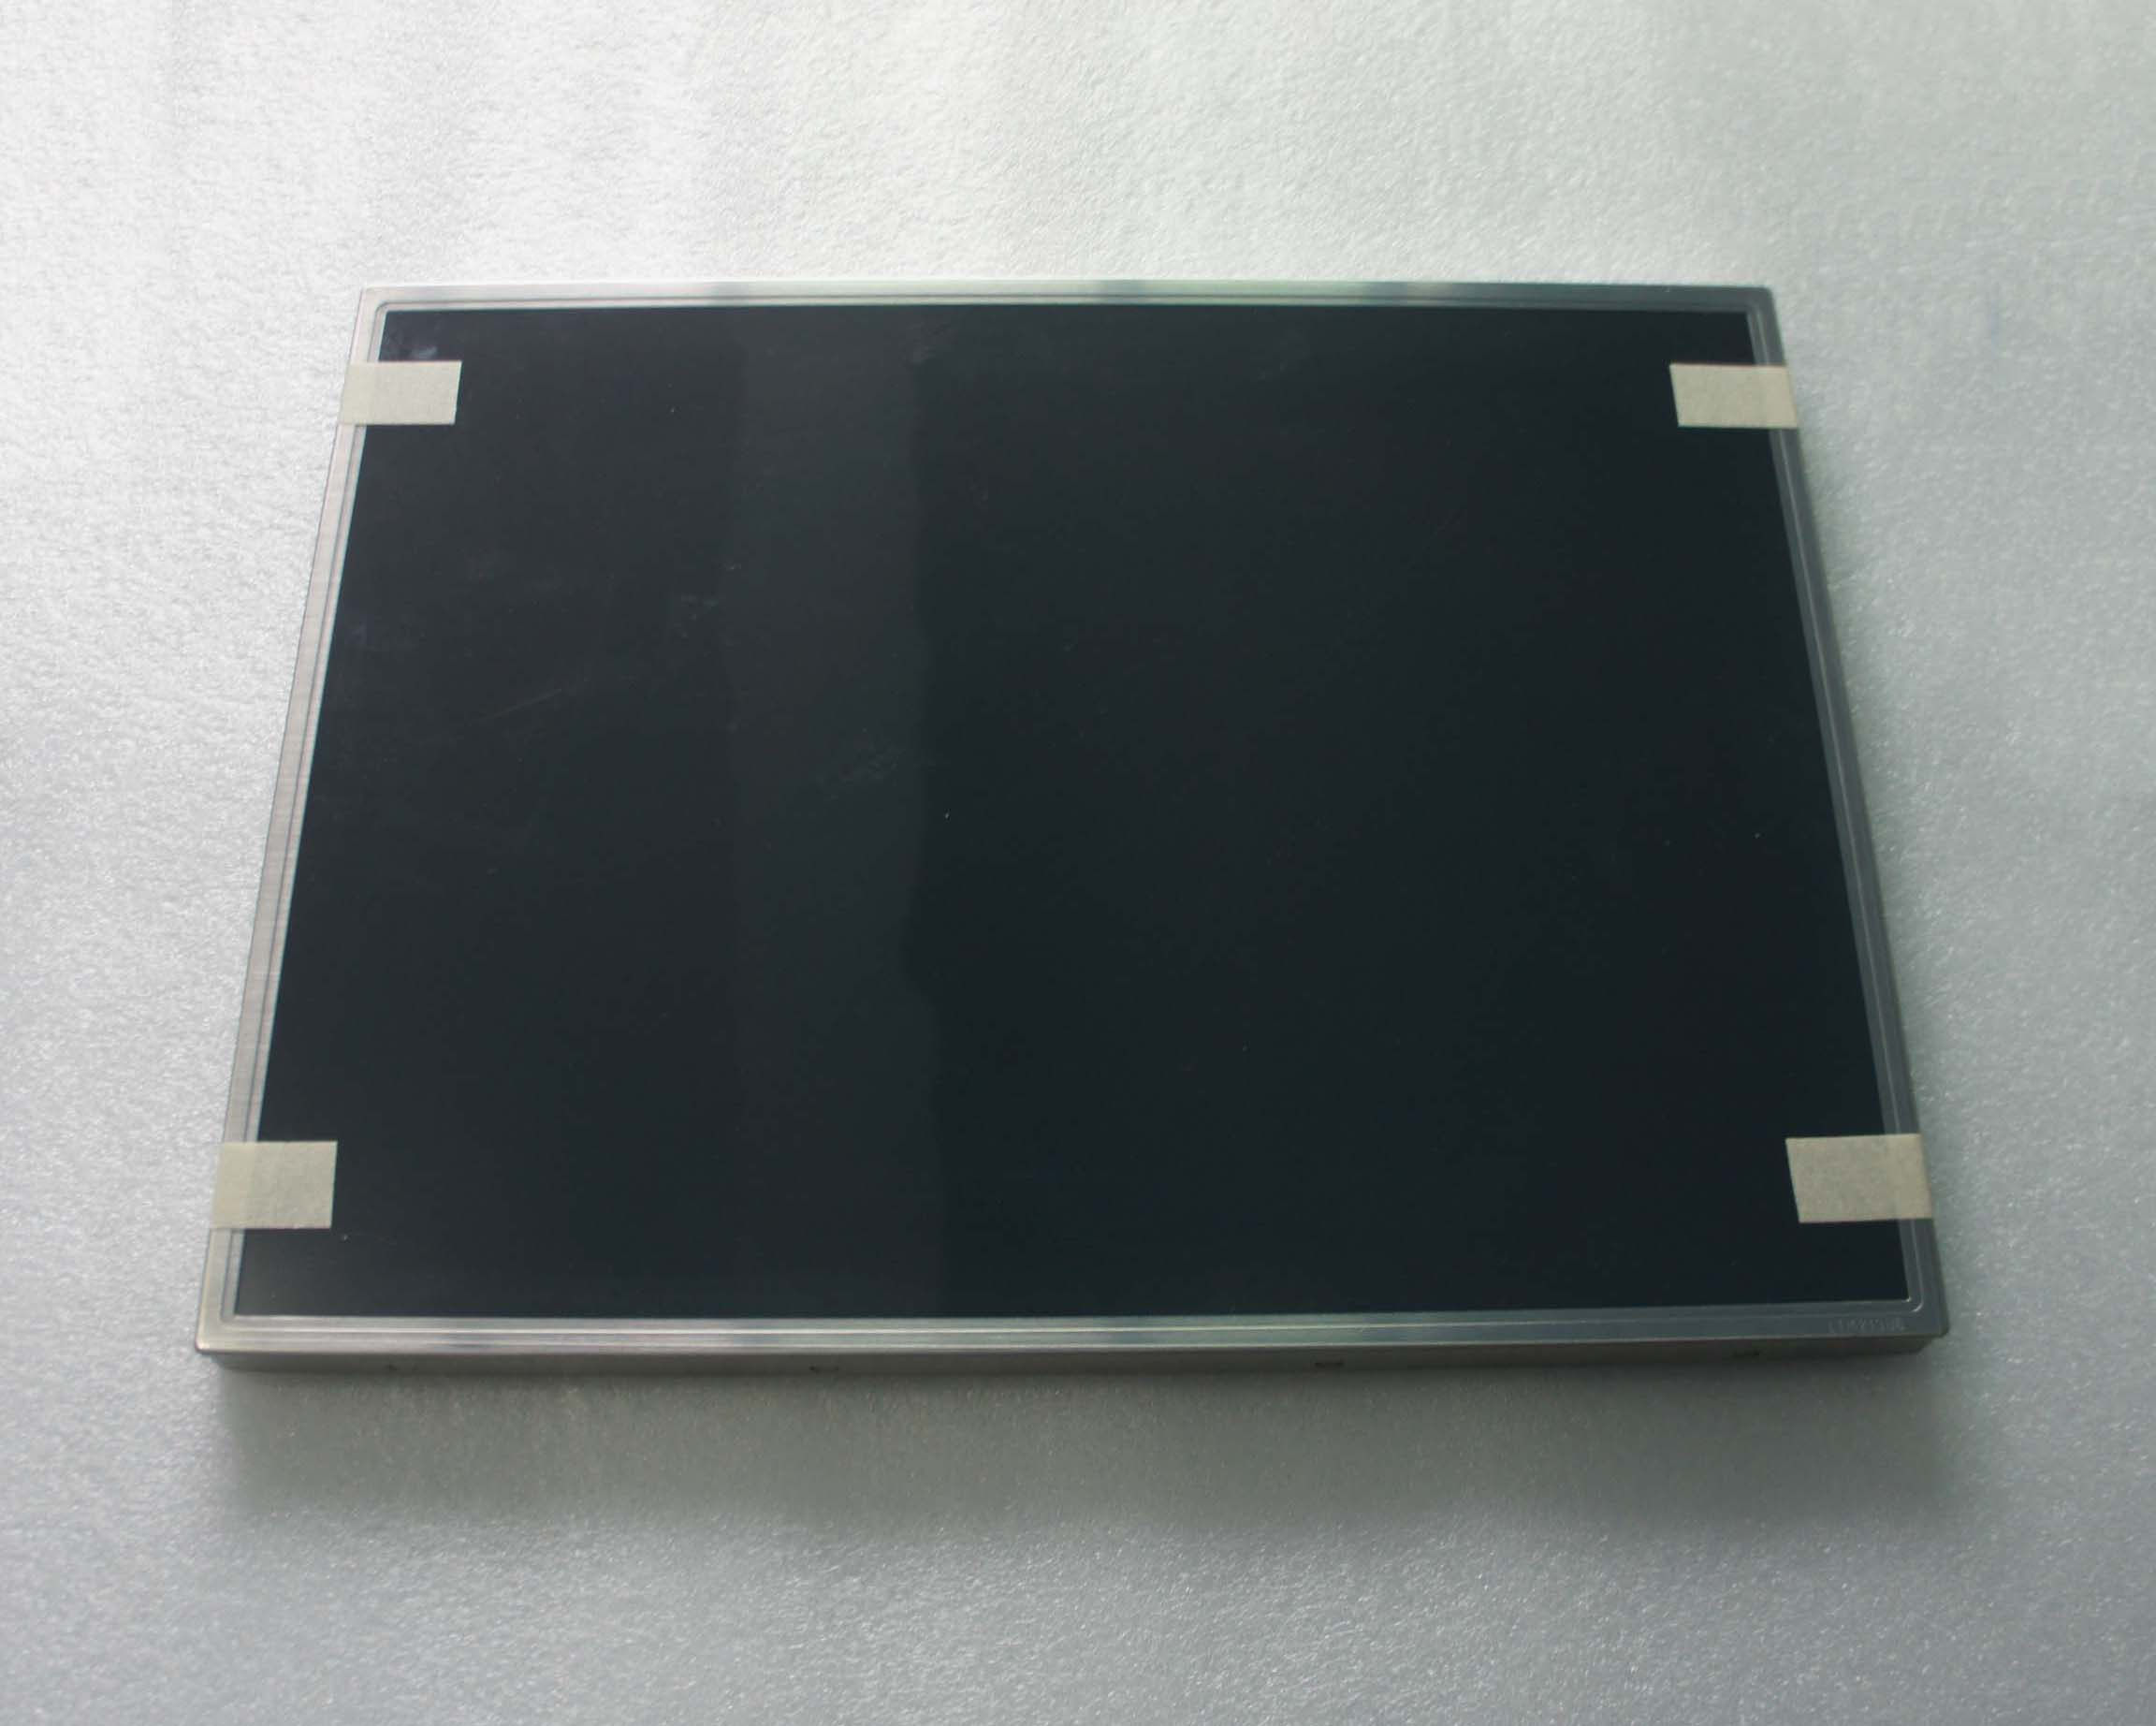 21.3inch 1600(RGB)×1200 (UXGA) LCD Display LTM213U4-L01